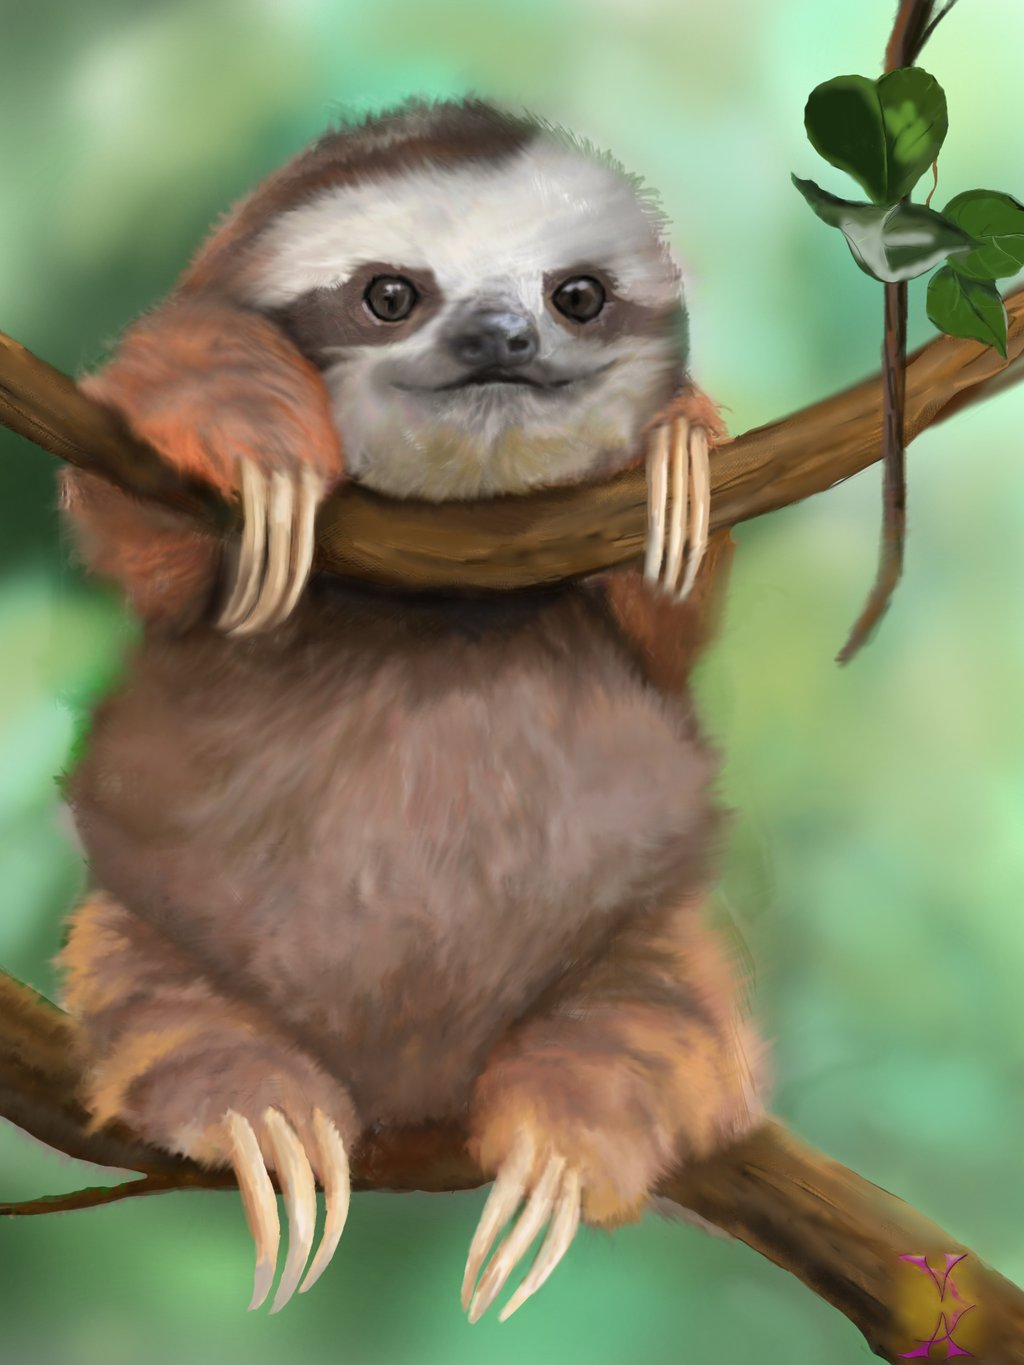 45 Cute Sloth Wallpaper On Wallpapersafari